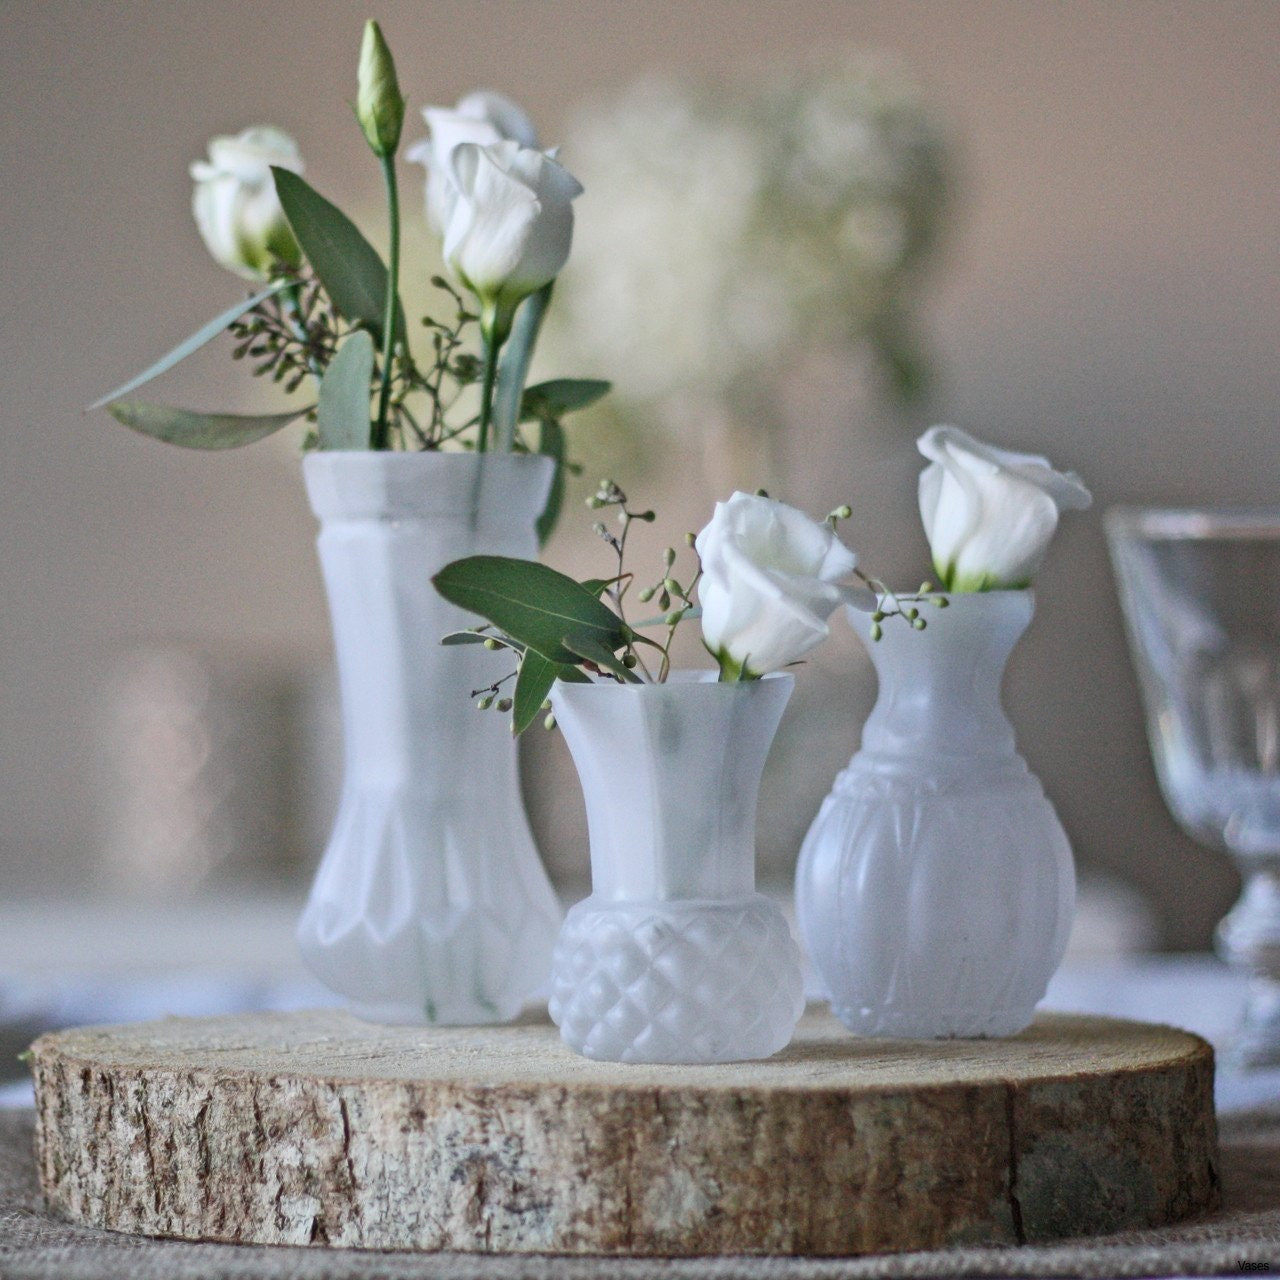 30 Awesome Small Glass Vases for Centerpieces